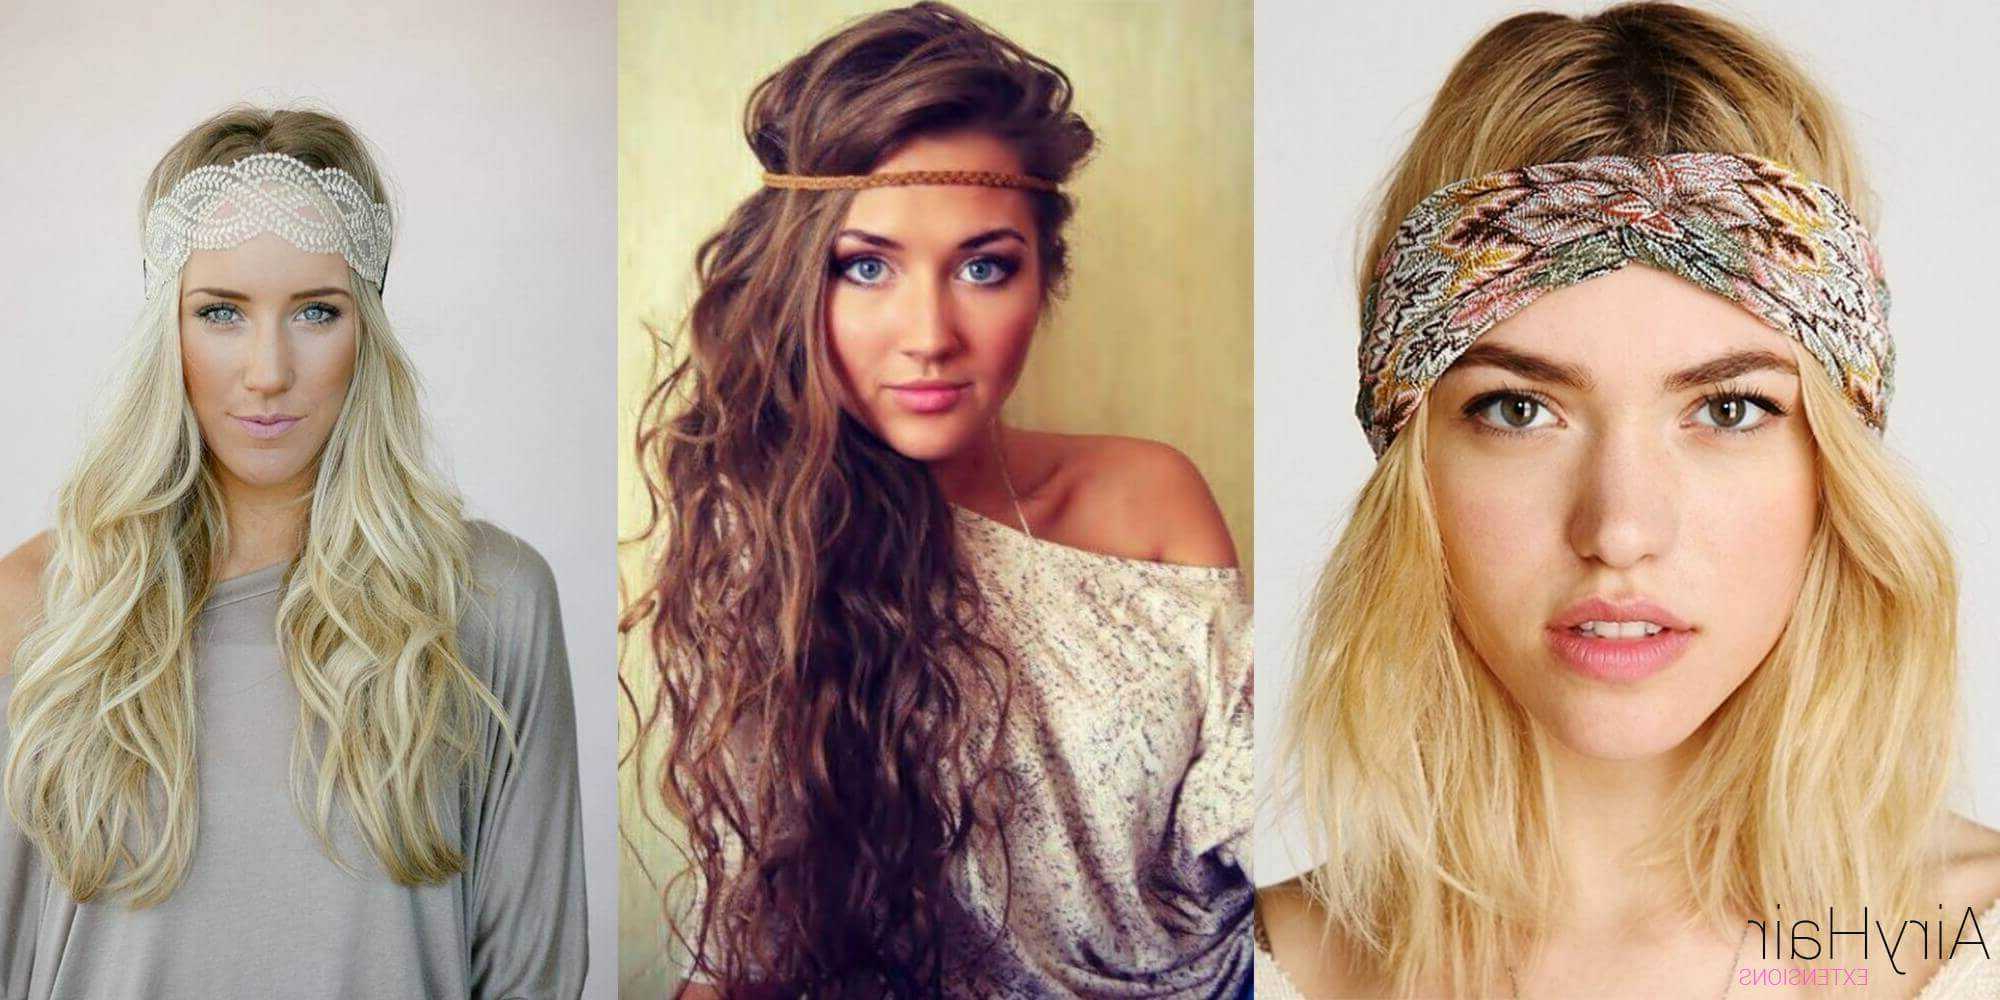 10 Best Chic And Creative Boho Hairstyles Within Newest Chic Bohemian Braid Hairstyles (Gallery 19 of 20)